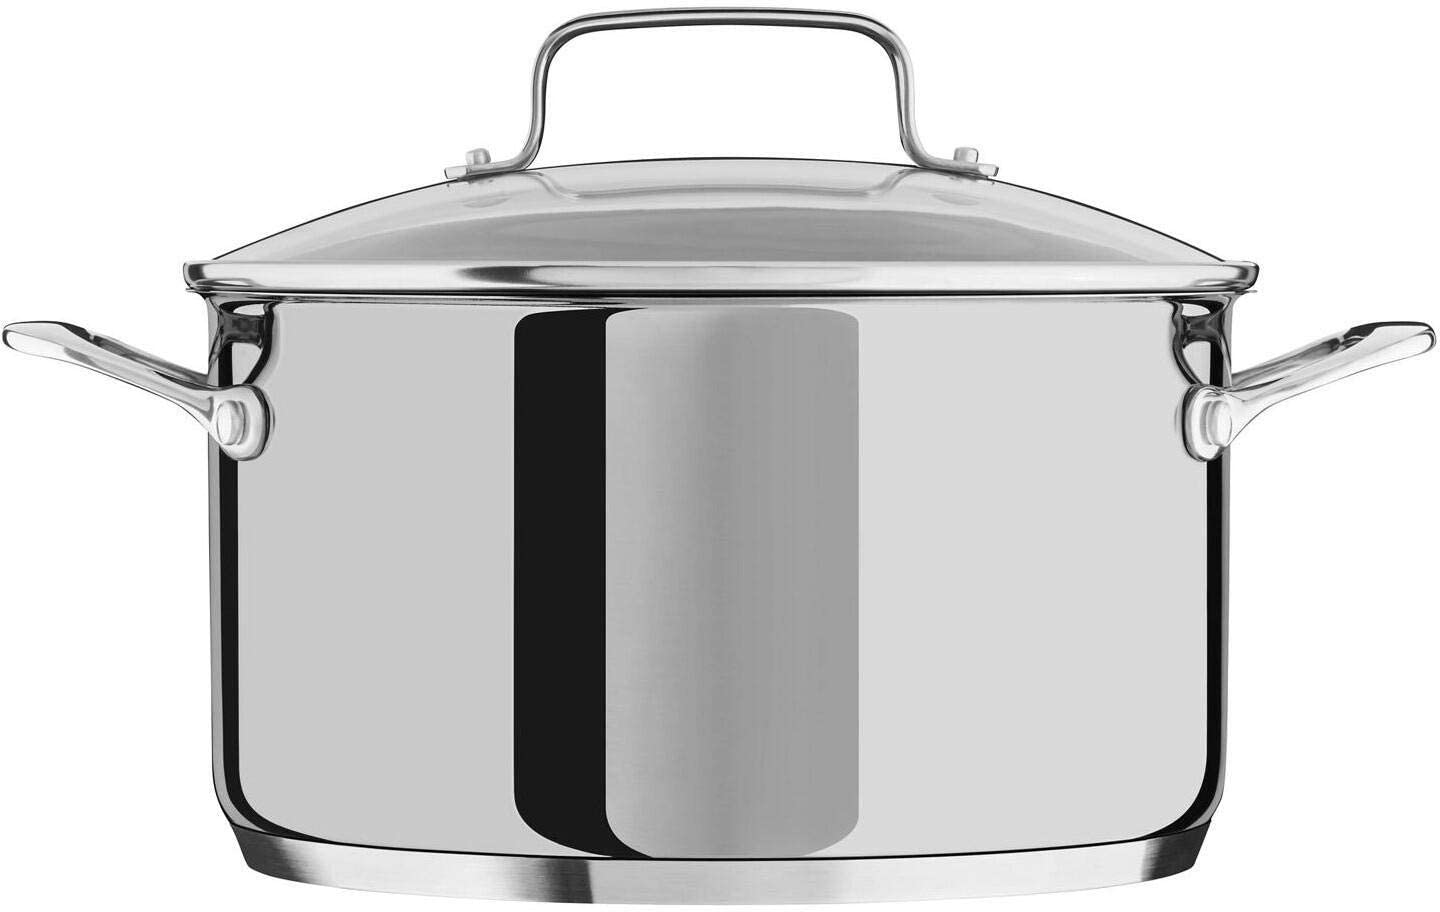 KitchenAid KC2S60LCLS 6-Quart Low Casserole Stockpot with Glass Lid in Polished Stainless Steel Pot